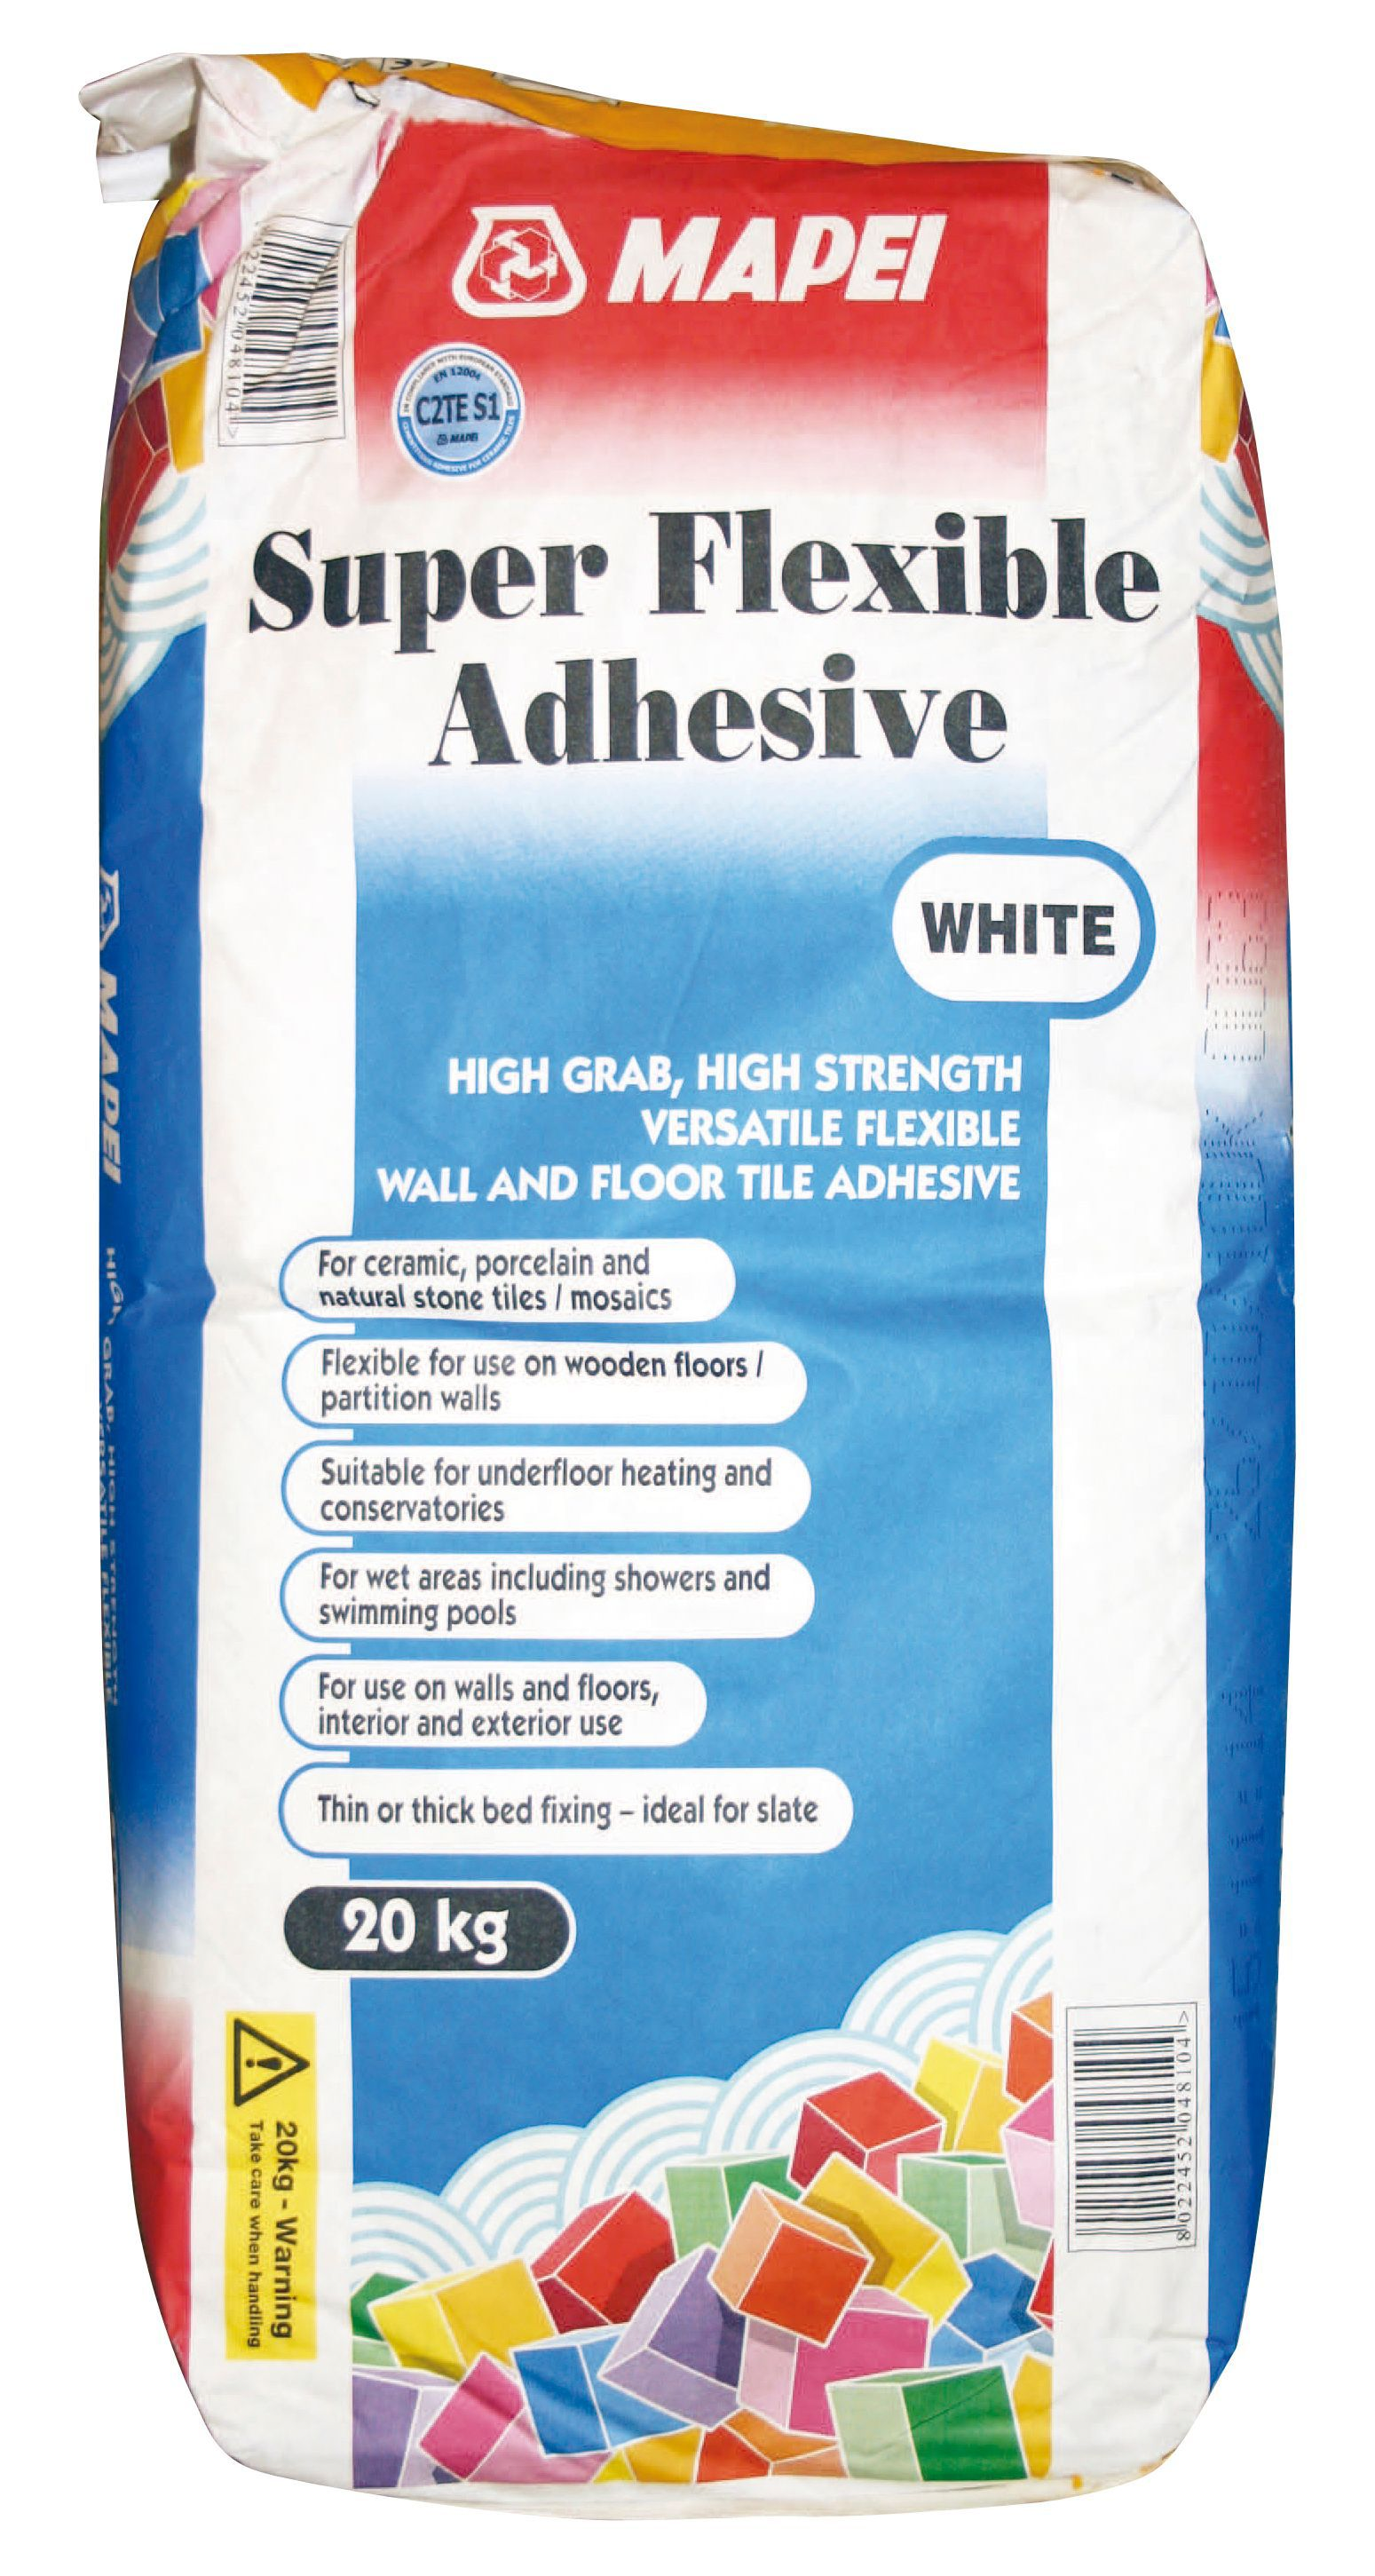 Mapei super flexible powder adhesive white 20kg departments mapei super flexible powder adhesive white 20kg departments diy at bq dailygadgetfo Gallery